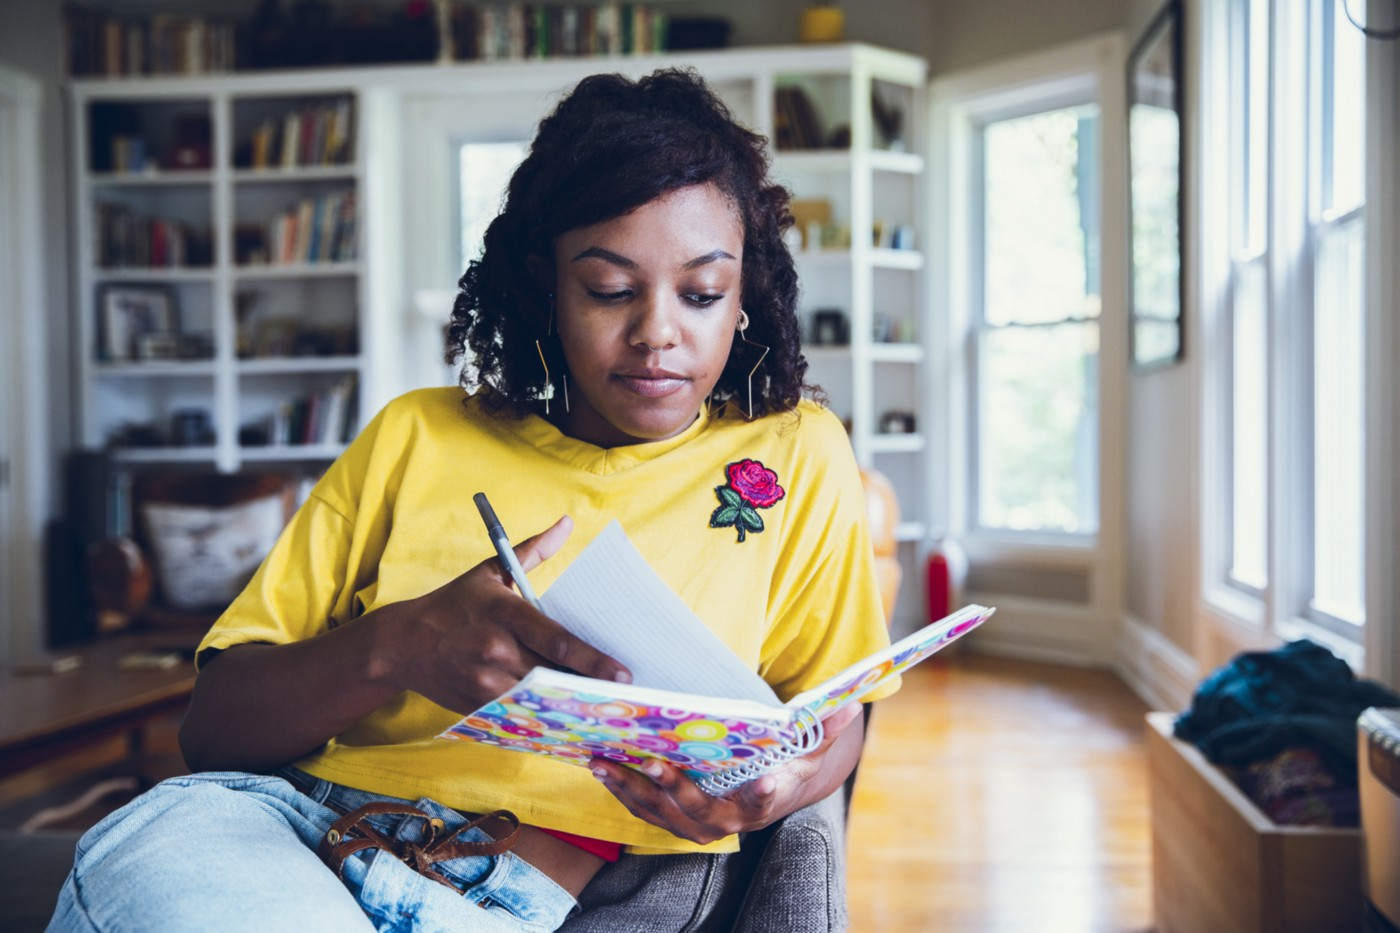 Young Black woman writing in her journal.